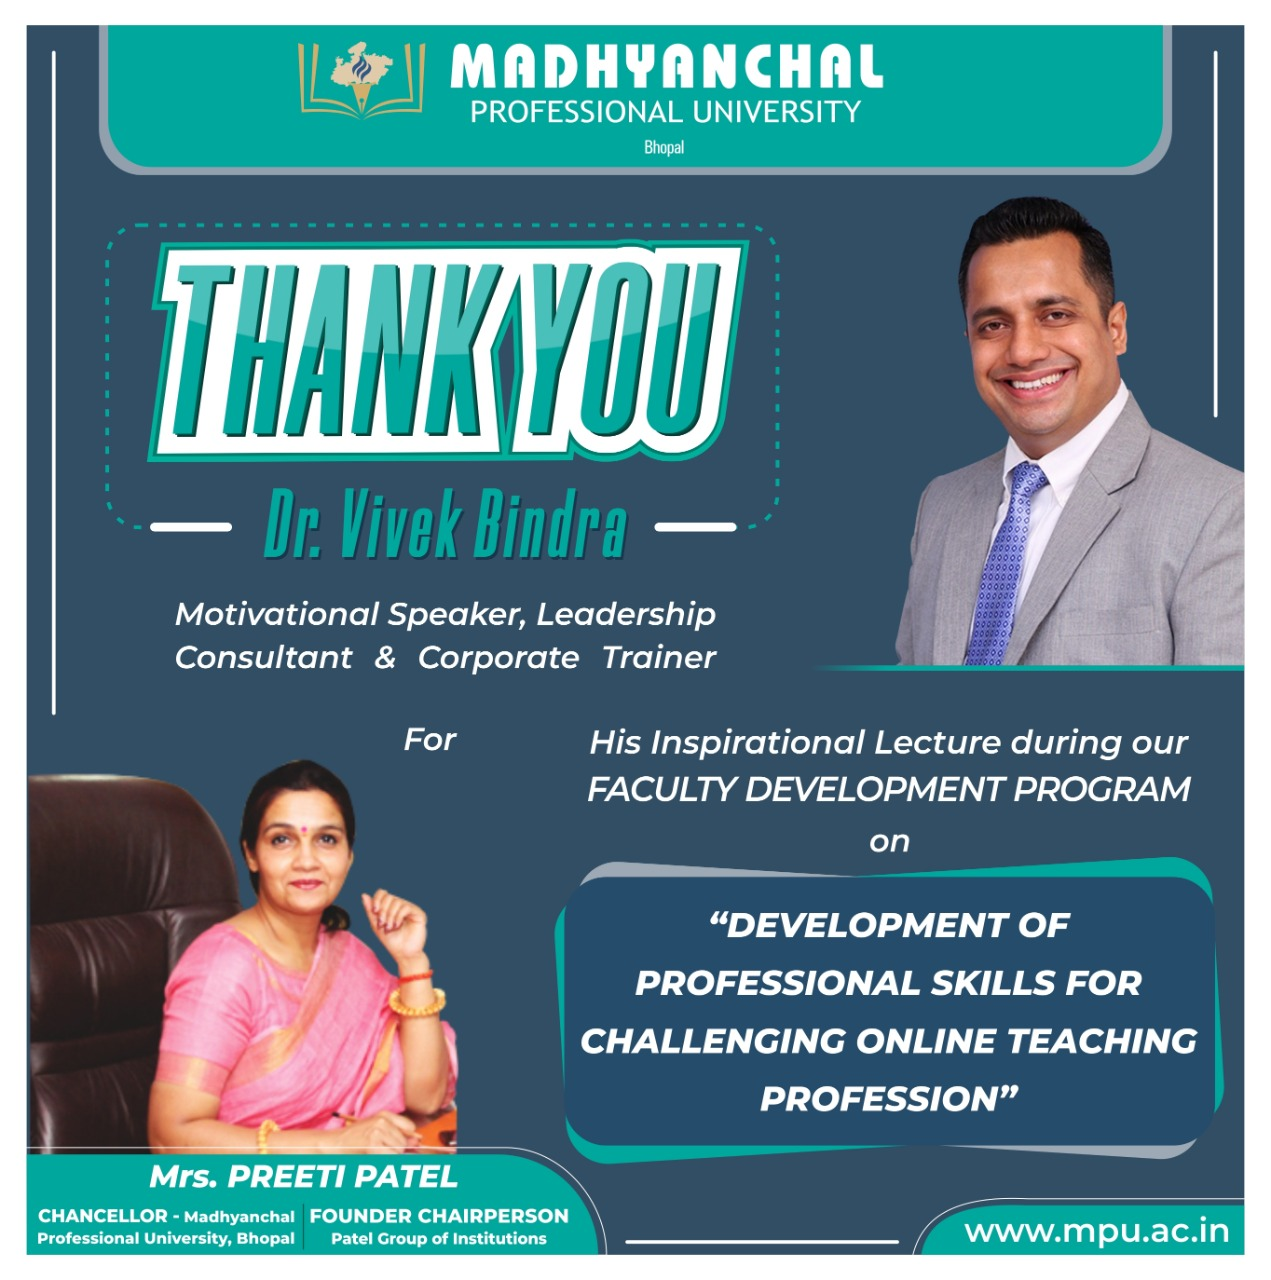 Thank you Dr. Vivek Bindra